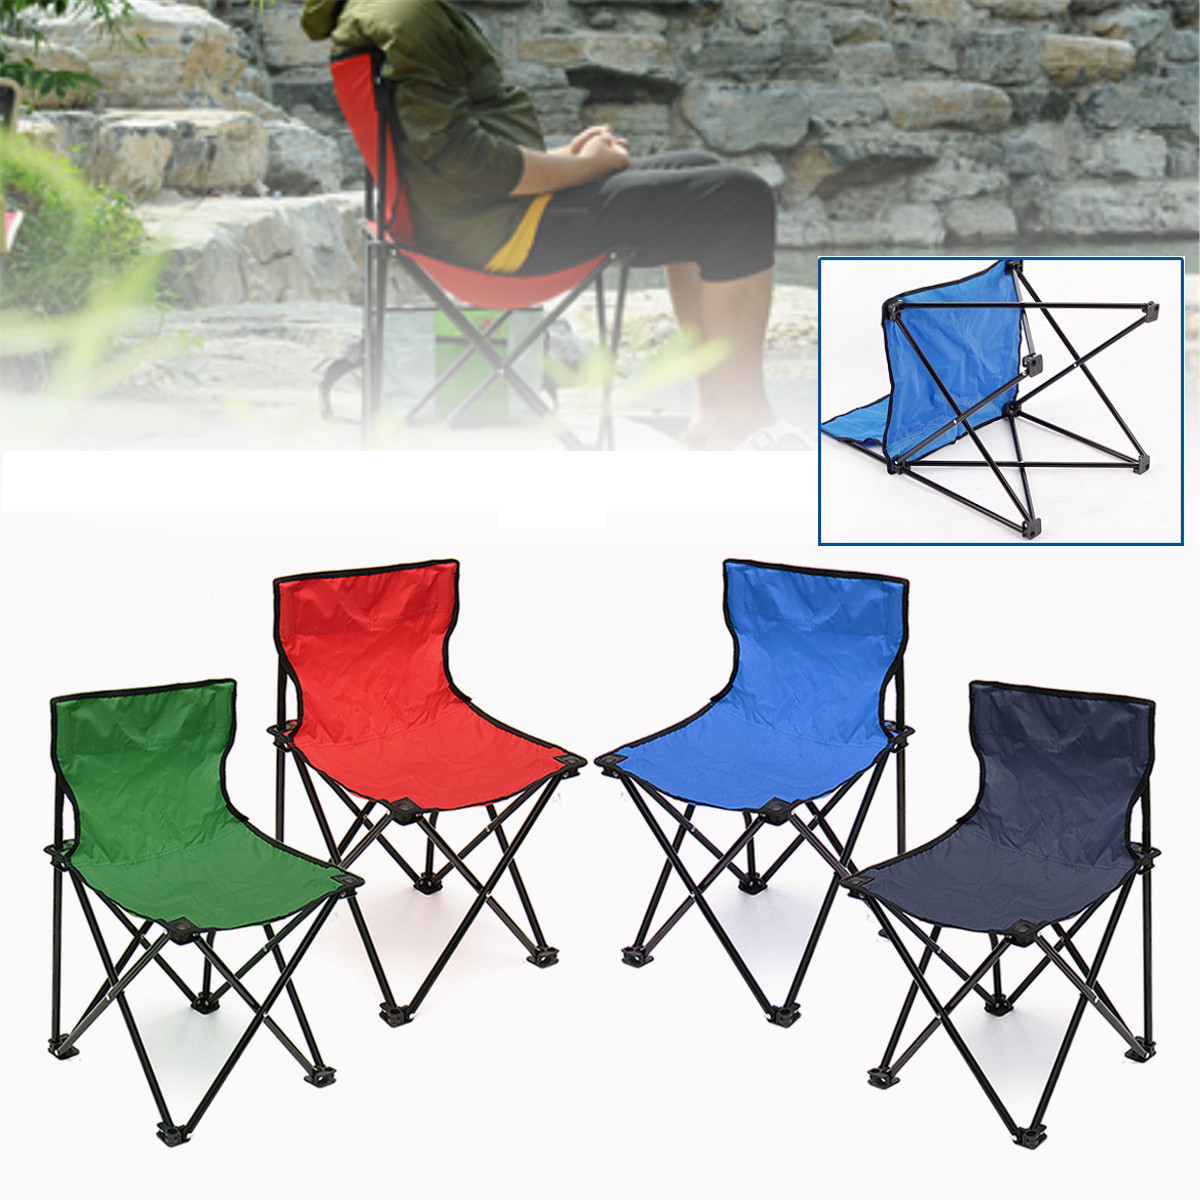 fishing chair singapore leather task 3431 5x32cm portable folding seat for camping